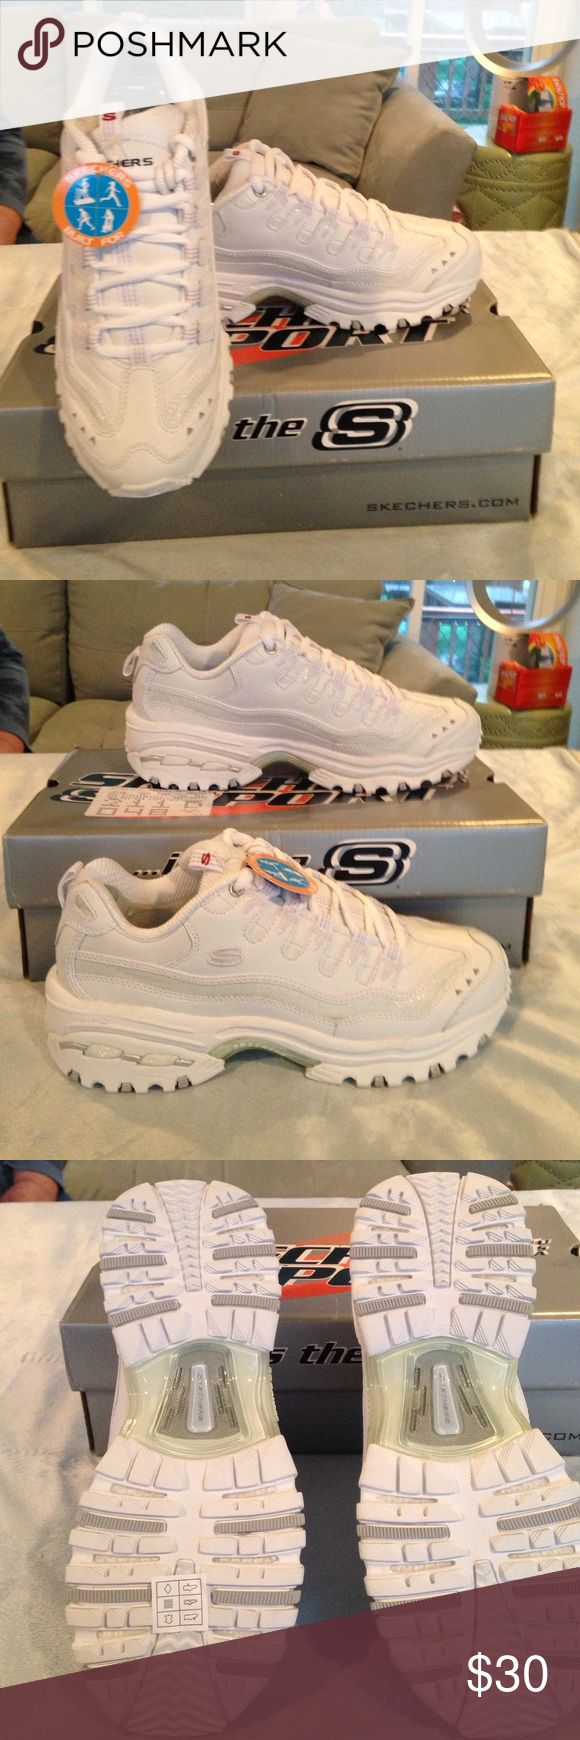 Skechers Sport Brand new white Skechers Sport sneakers with tags and box Skechers Shoes Sneakers